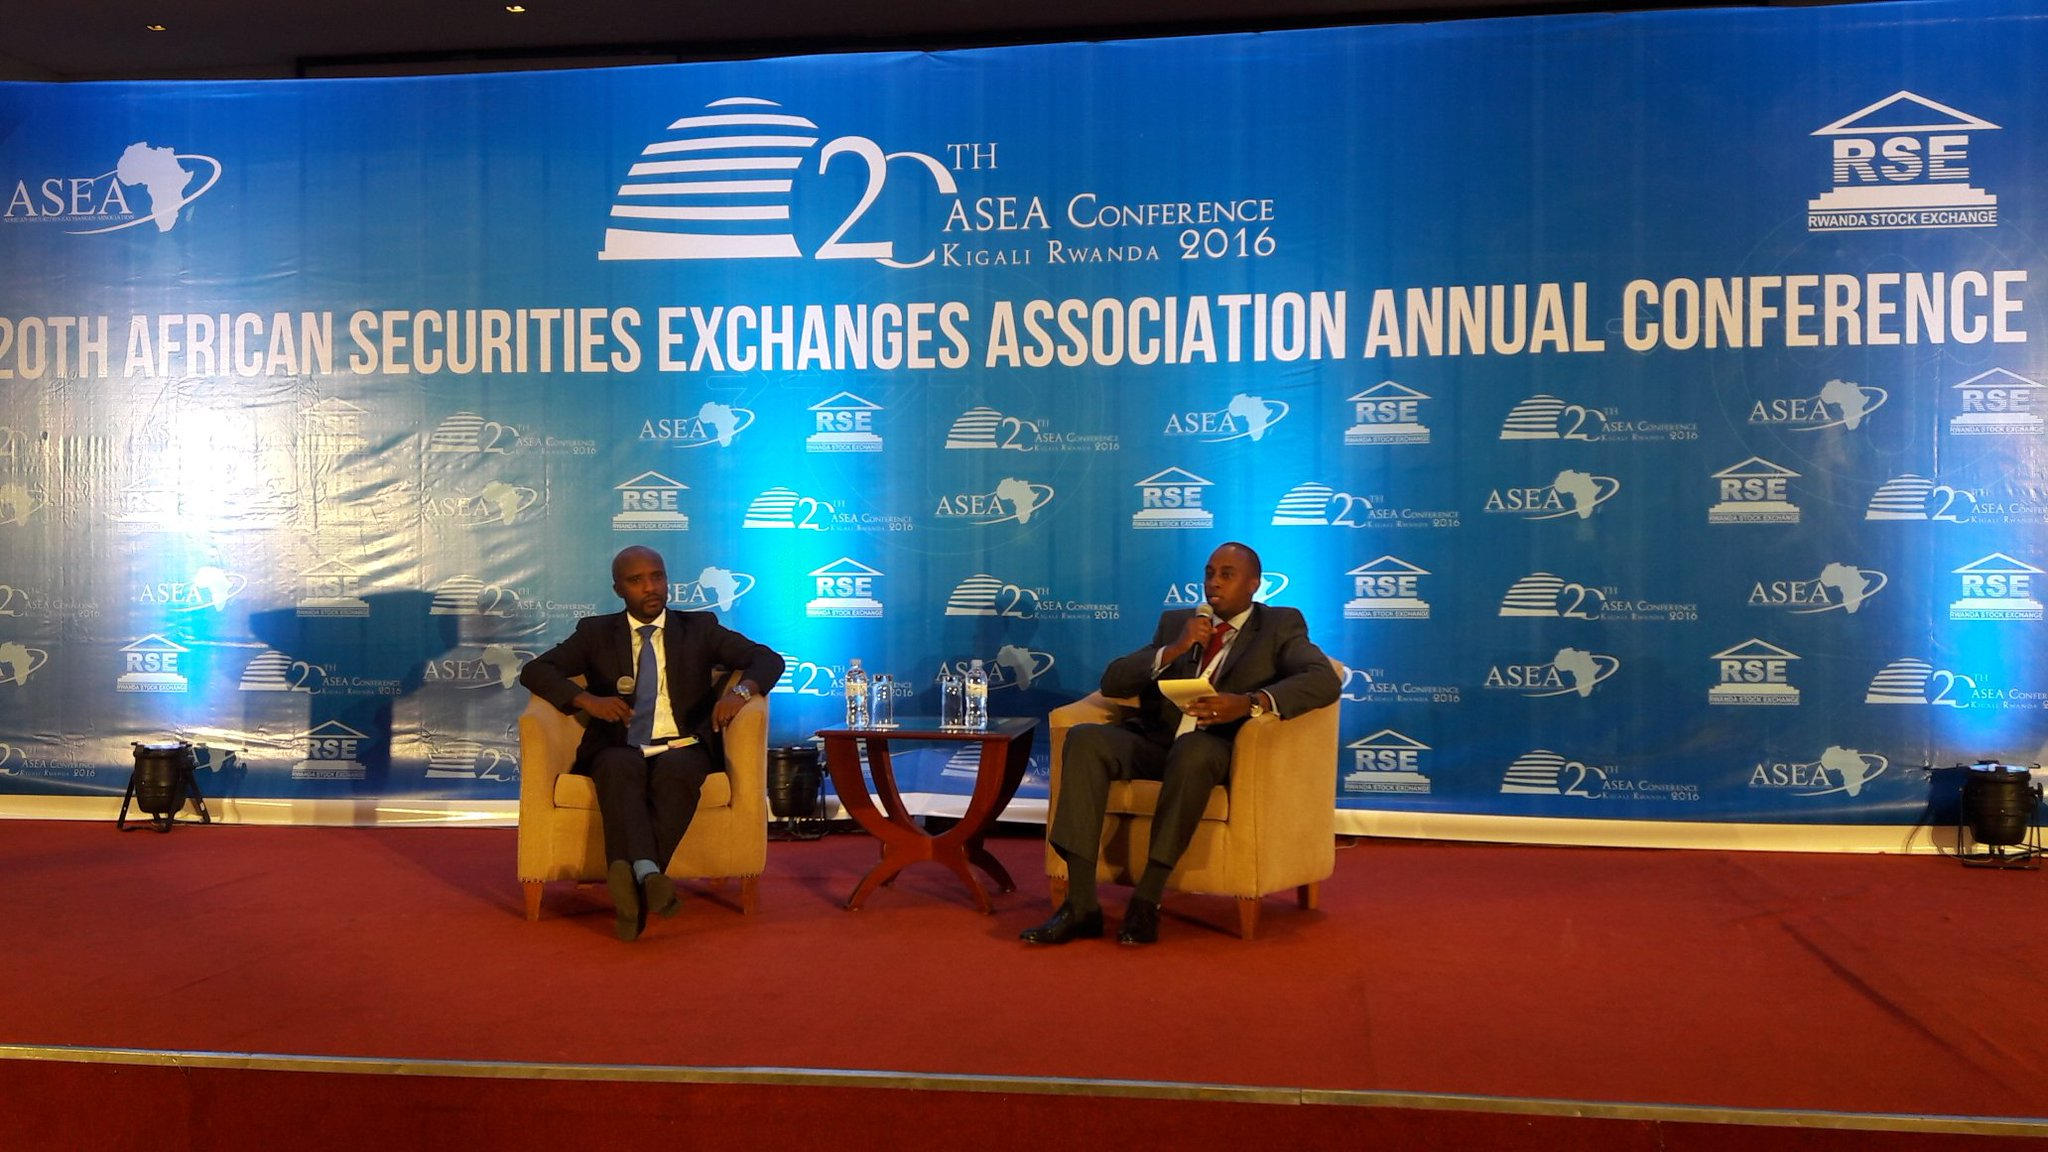 20th African Securities Exchanges Association photo from Twitter